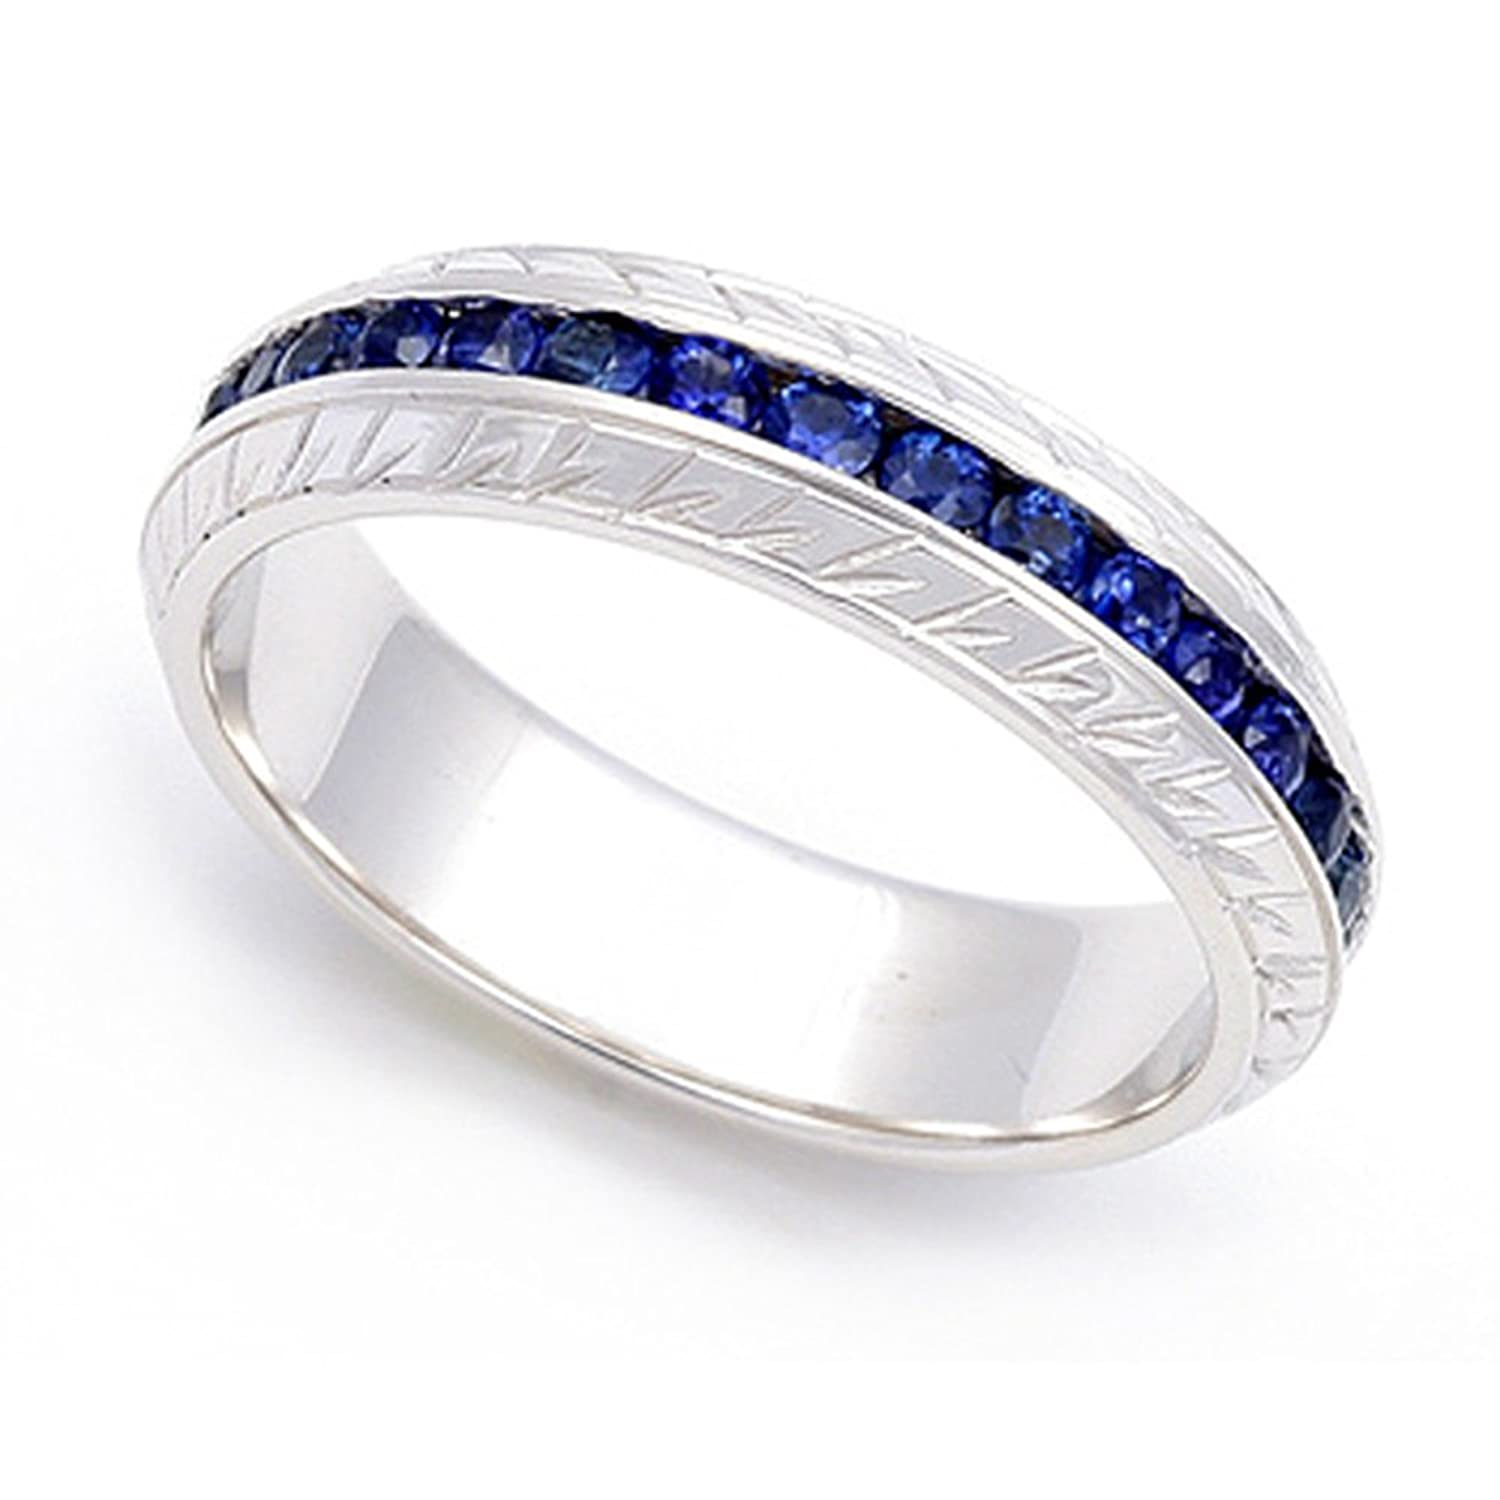 rings master eternity emerald jewelry band art bands deco j sapphire platinum id ring